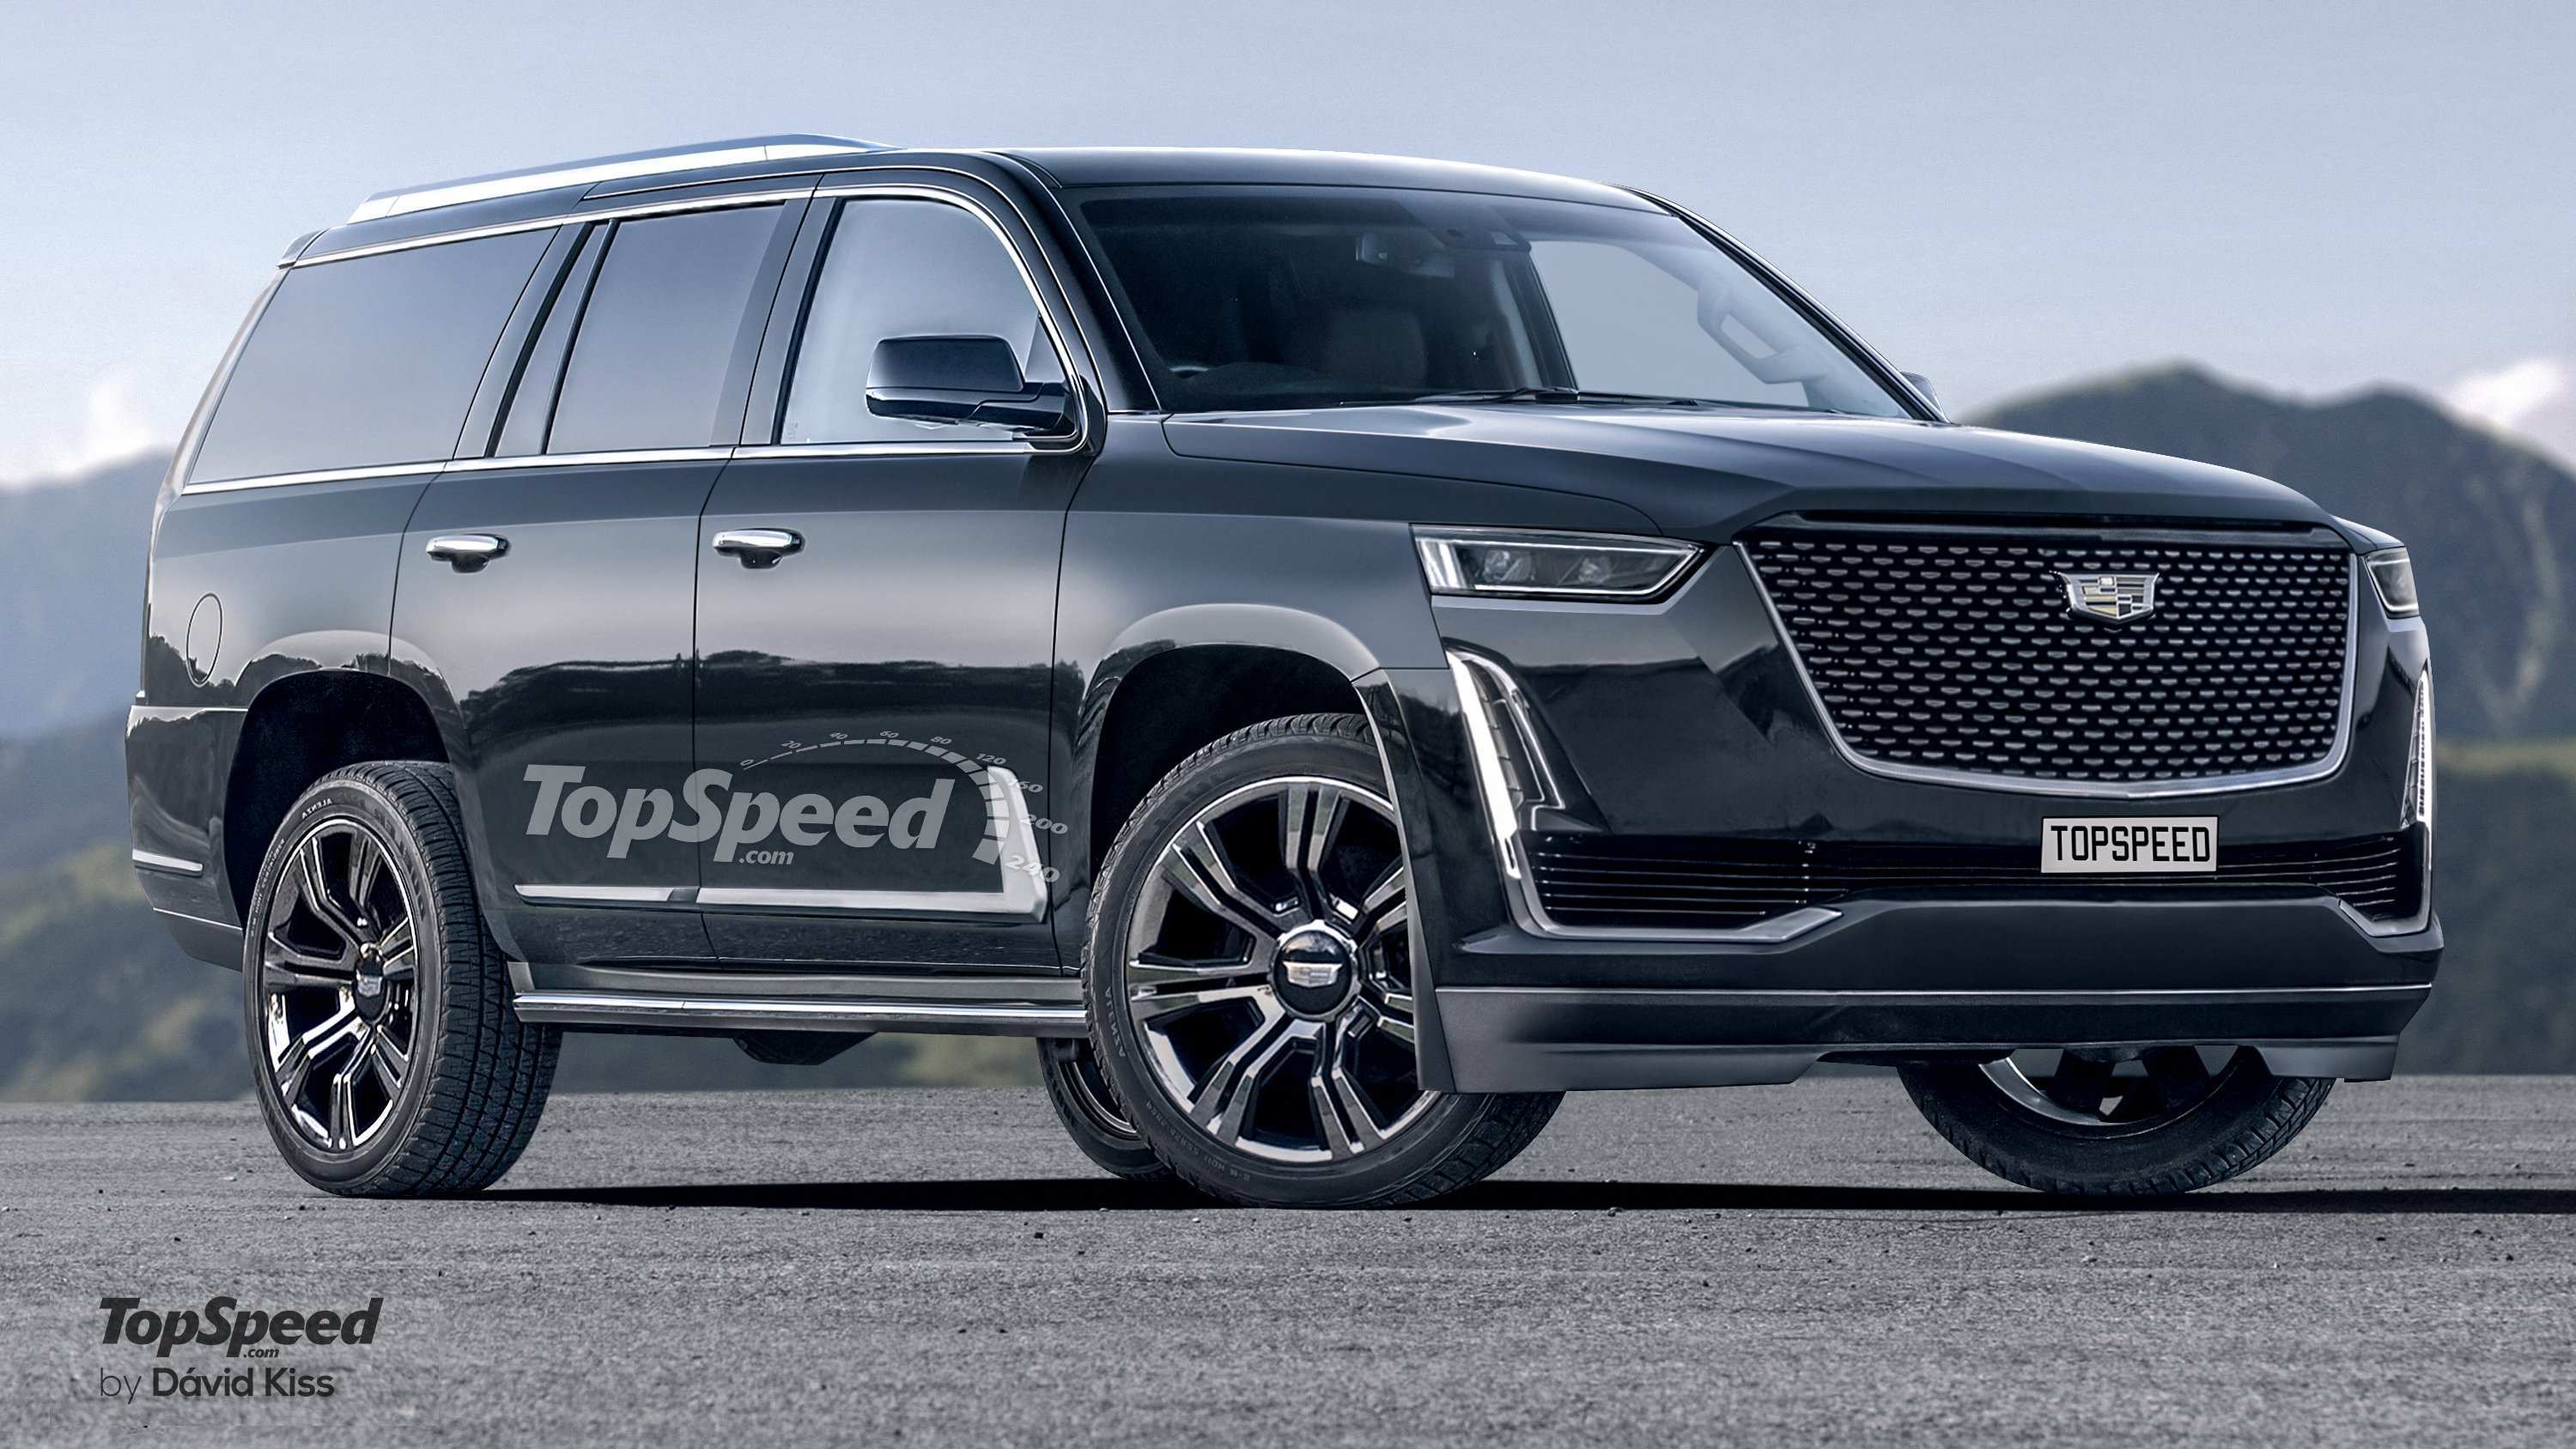 90 The Best Cadillac Suv Escalade 2020 Specs And Review